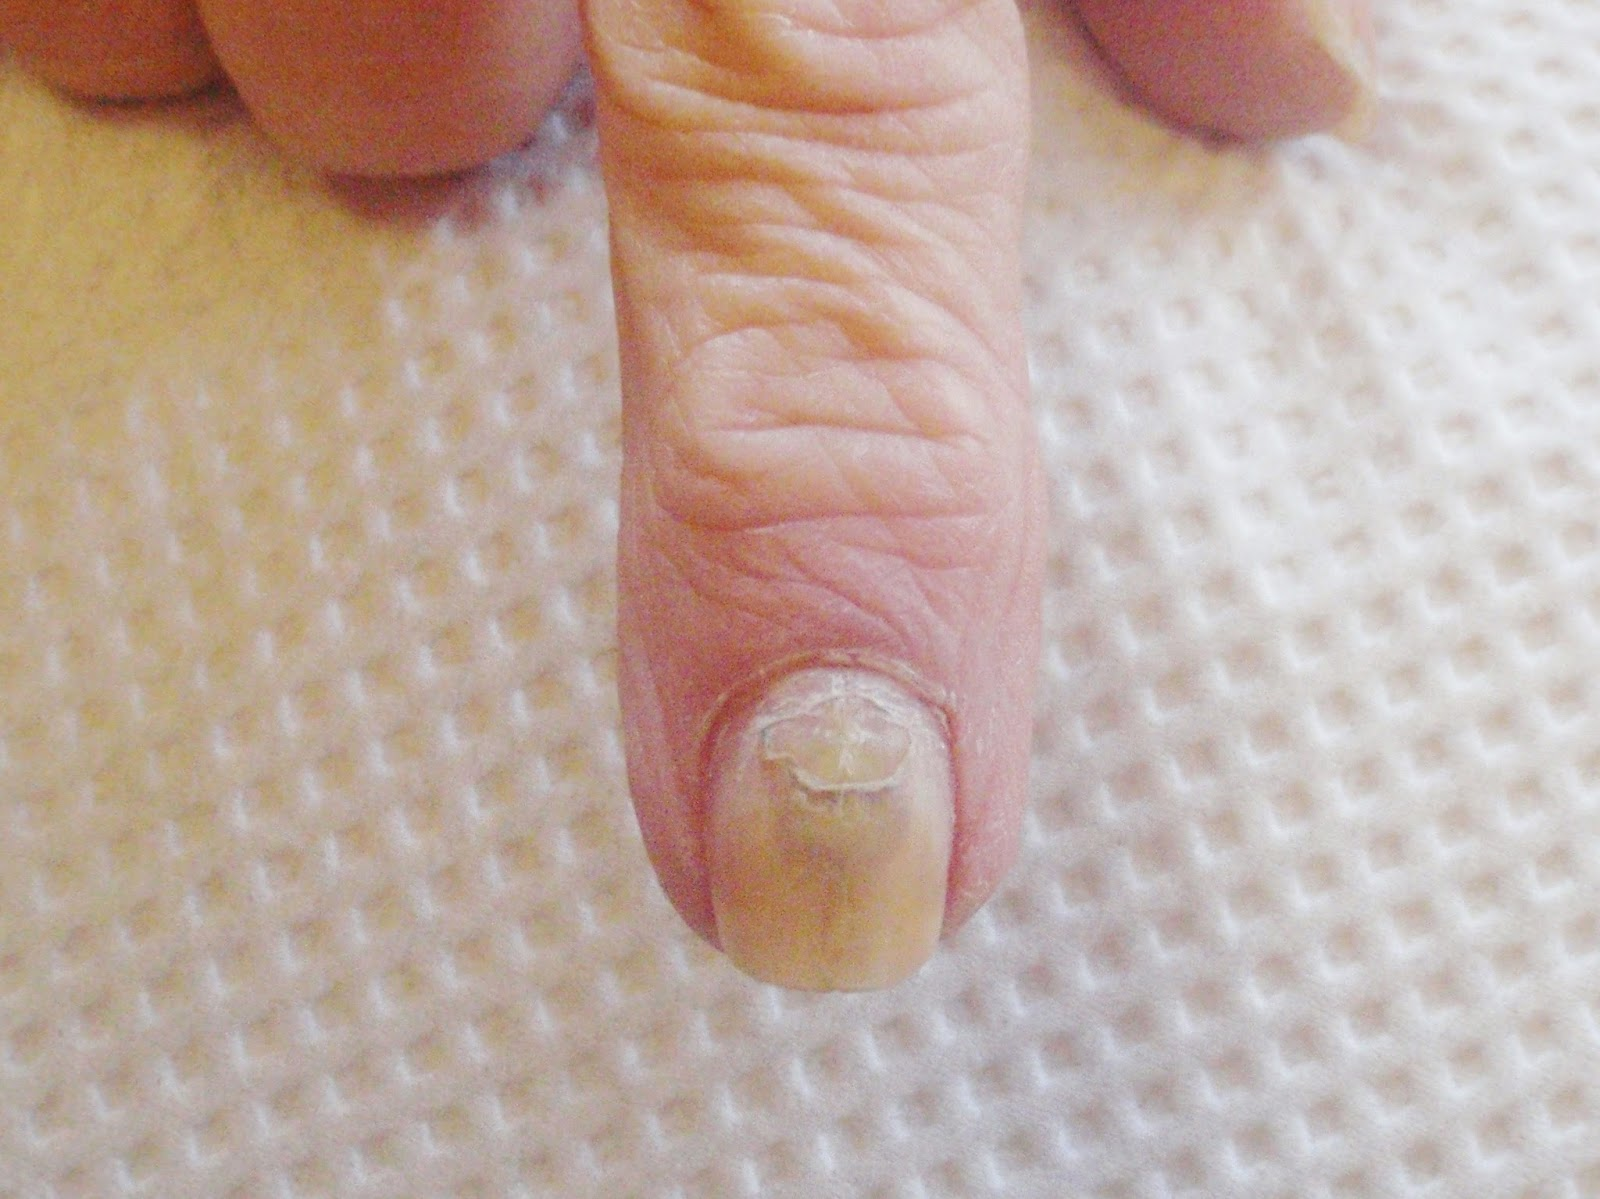 Bruised Injured Nail Is Falling Off